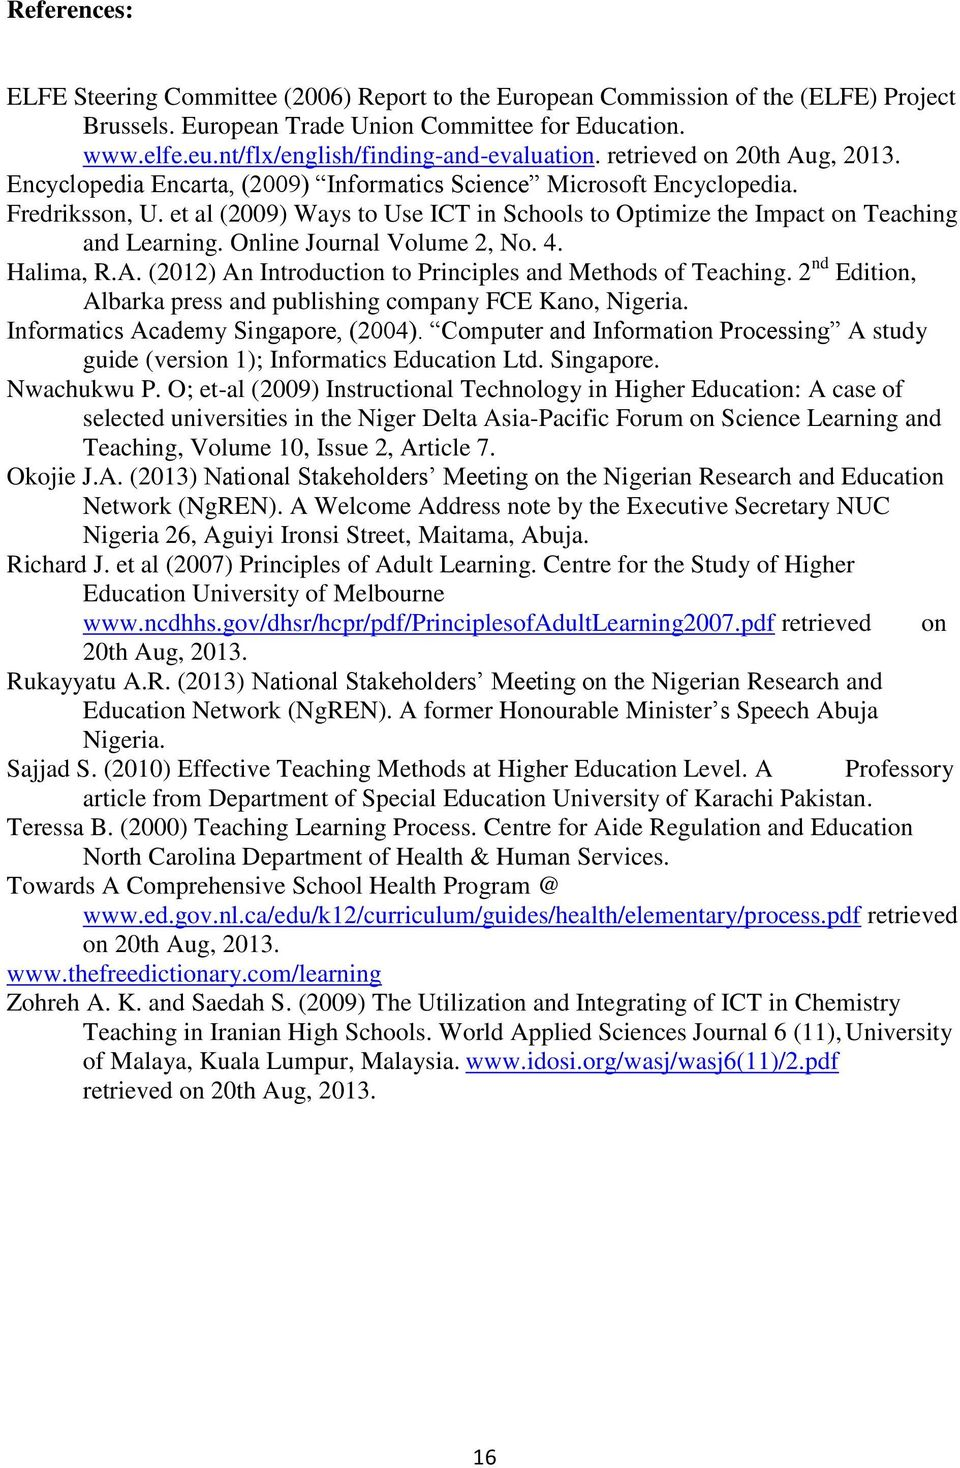 et al (2009) Ways to Use ICT in Schools to Optimize the Impact on Teaching and Learning. Online Journal Volume 2, No. 4. Halima, R.A. (2012) An Introduction to Principles and Methods of Teaching.